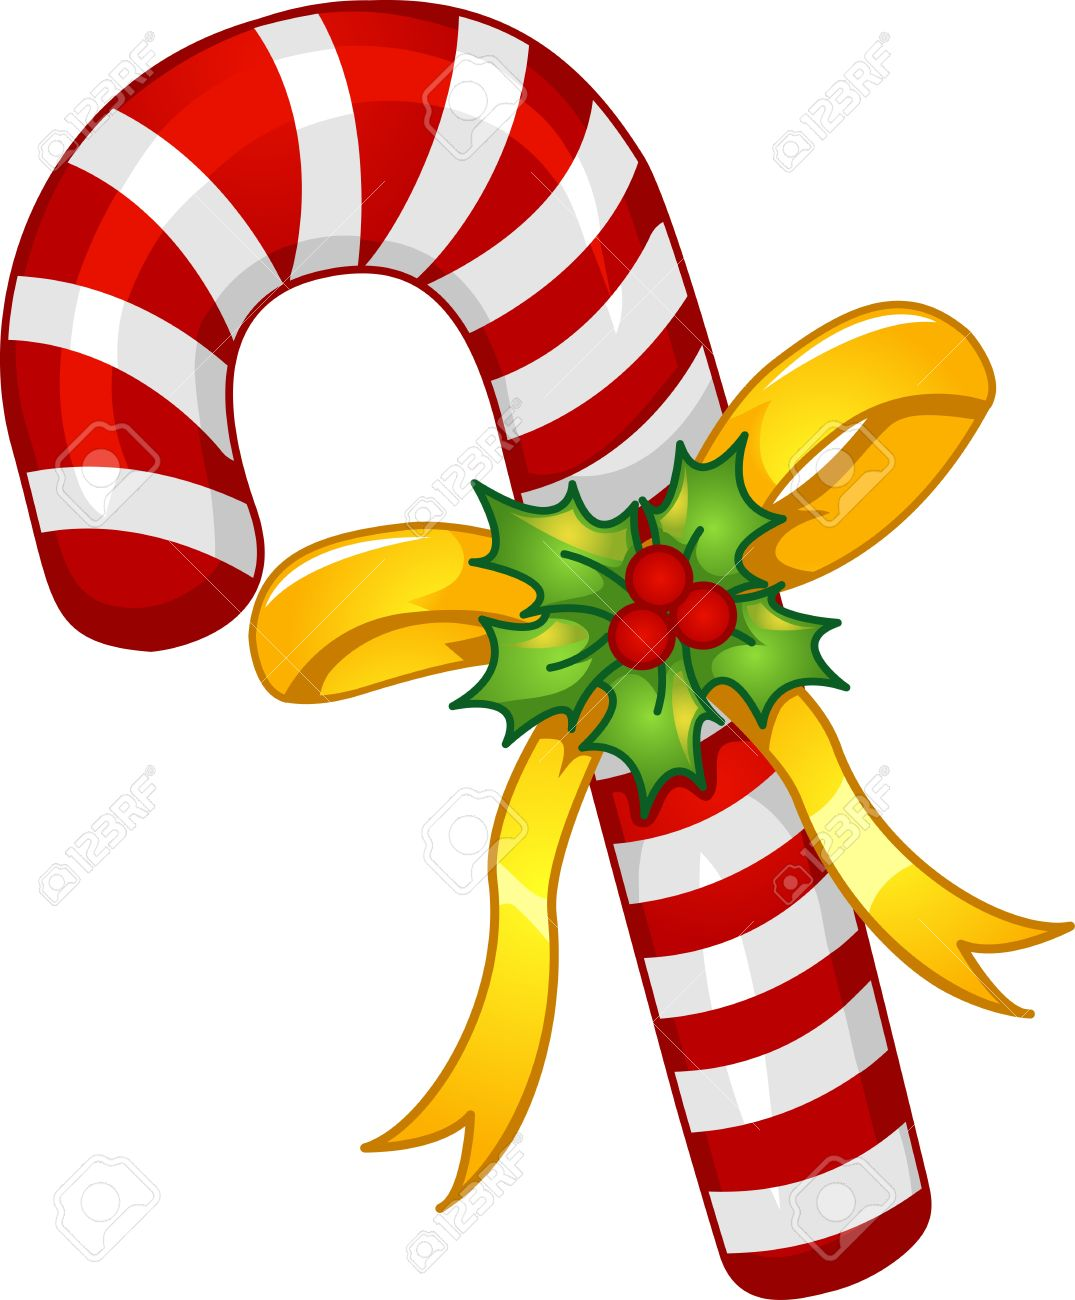 mascot illustration of a candy cane with a poinsettia wrapped rh 123rf com free christmas candy cane clipart free christmas candy cane clipart